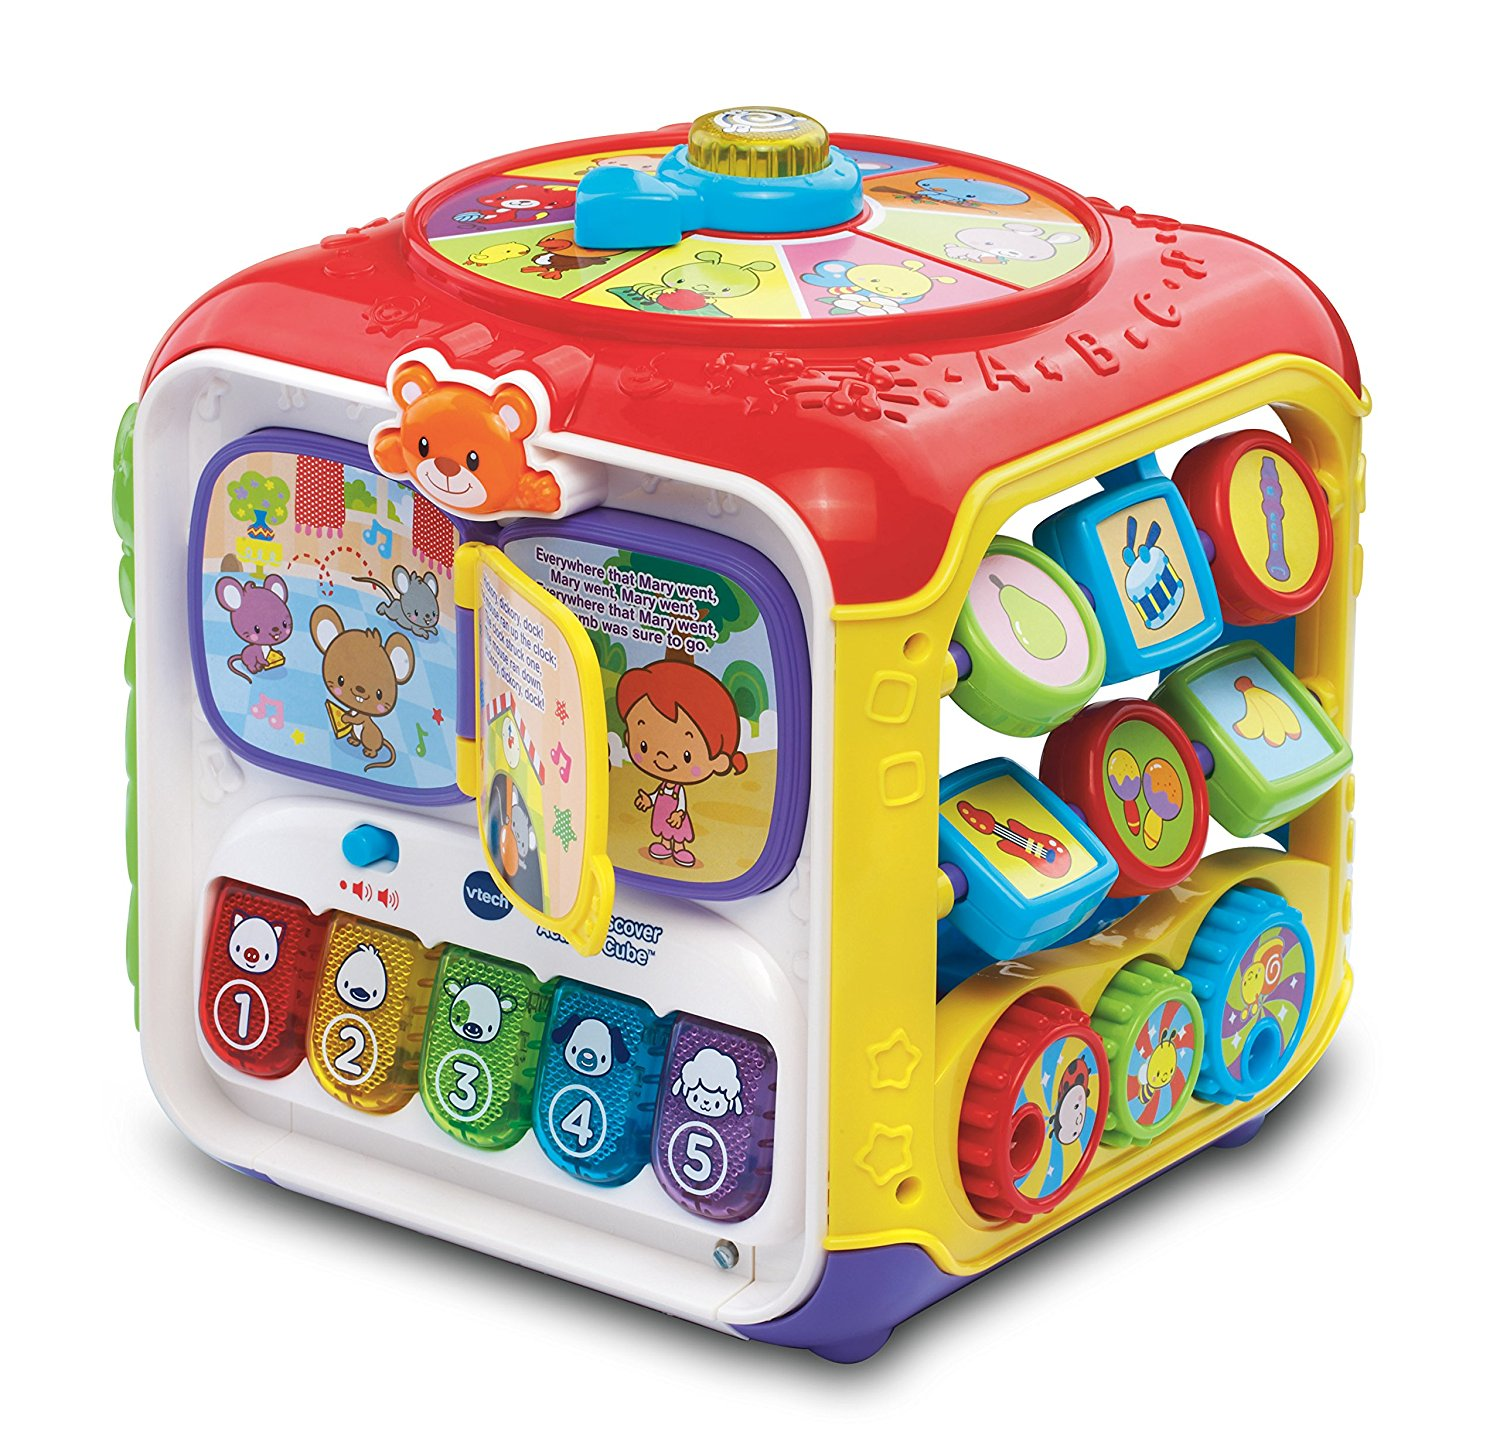 Sort & Discover Activity Cube By VTech Ship from US